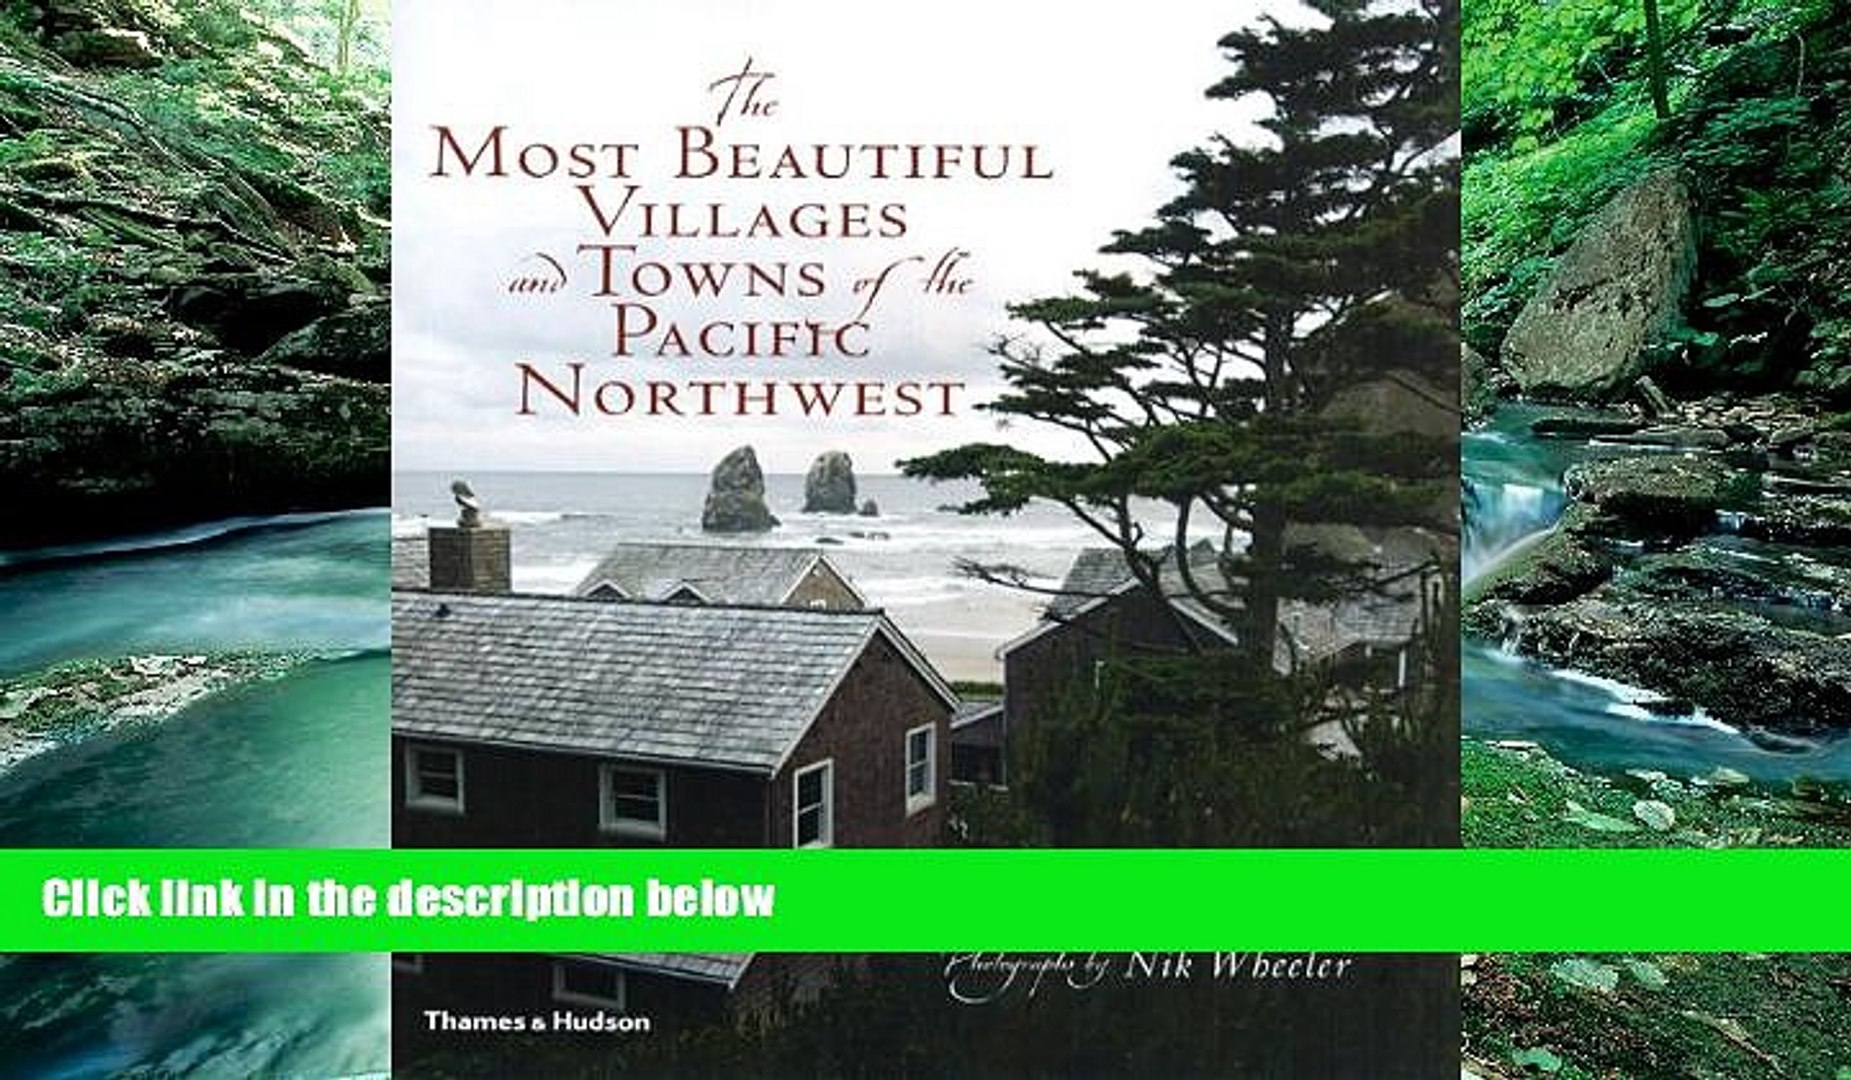 Books to Read  The Most Beautiful Villages and Towns of the Pacific Northwest (The Most Beautiful